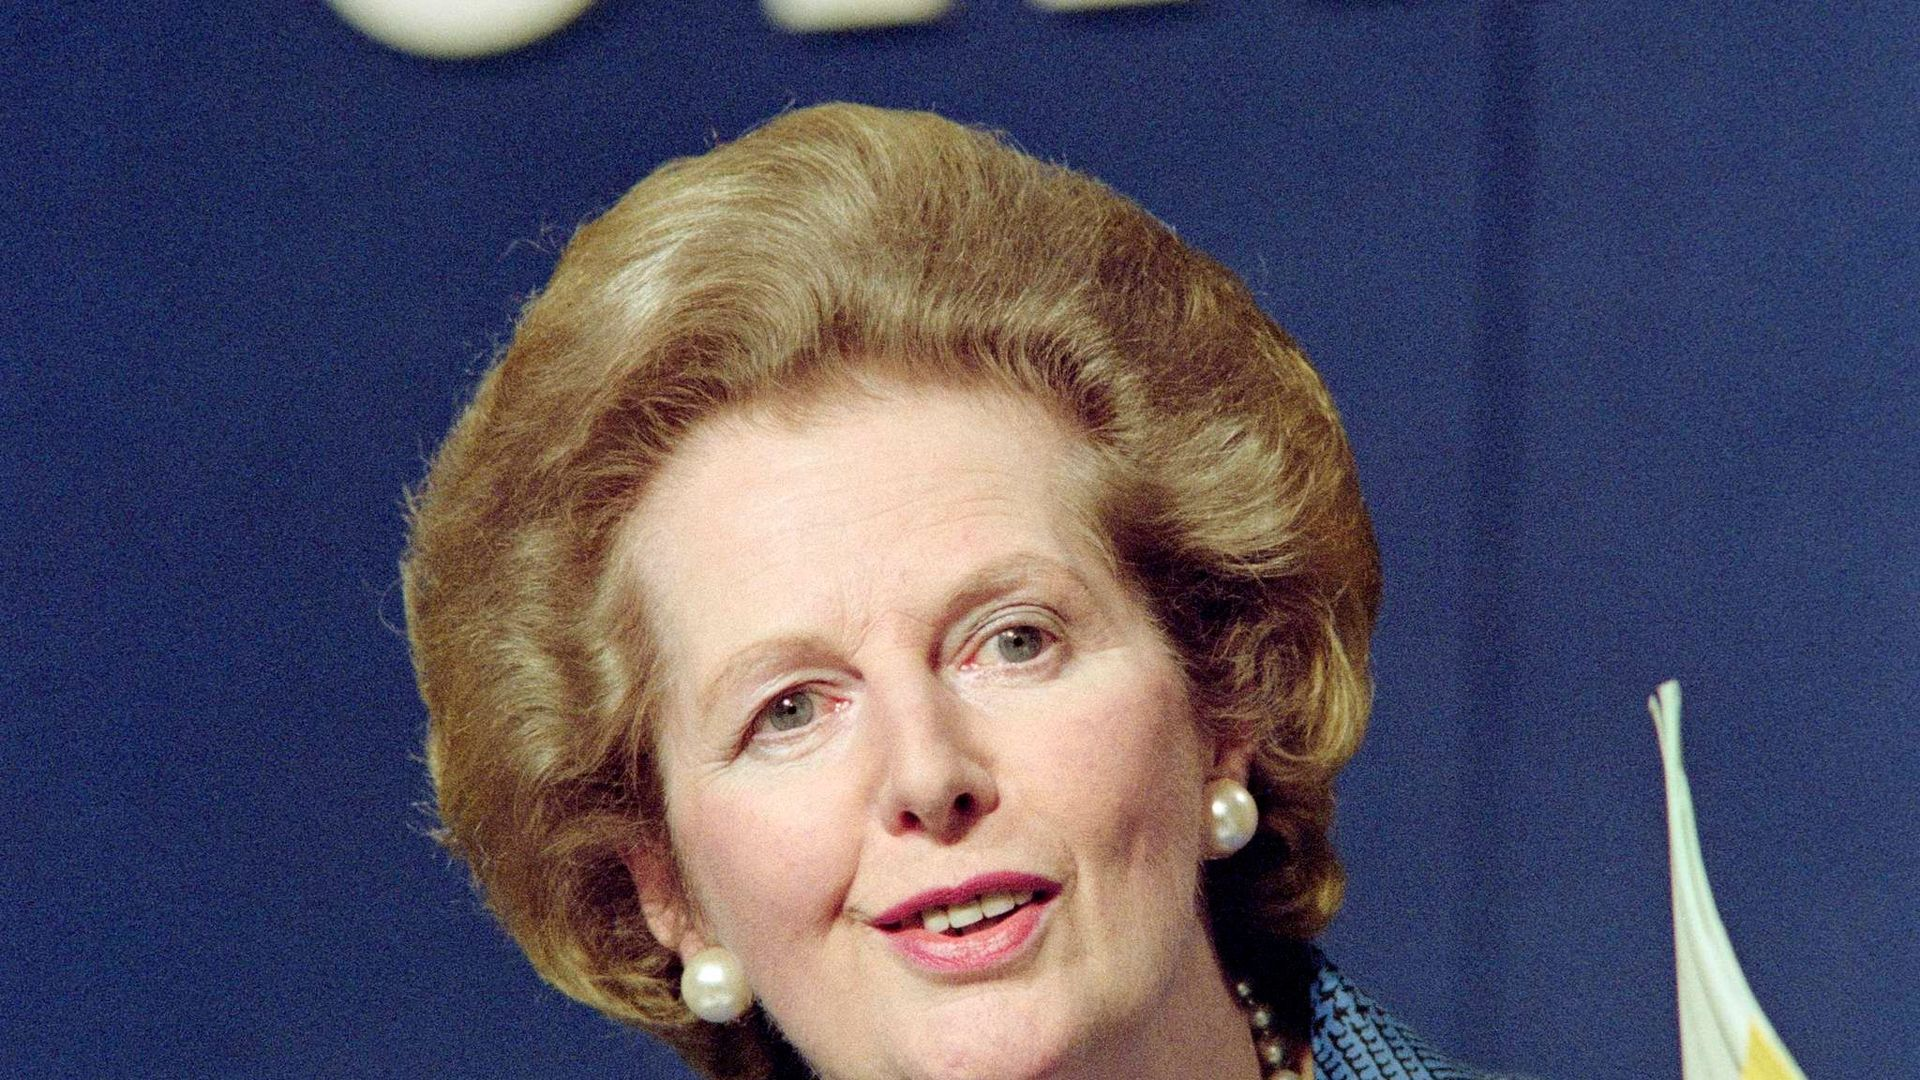 Margaret thatcher a tribute in words and pictures Choose life: a short history Overland literary journal